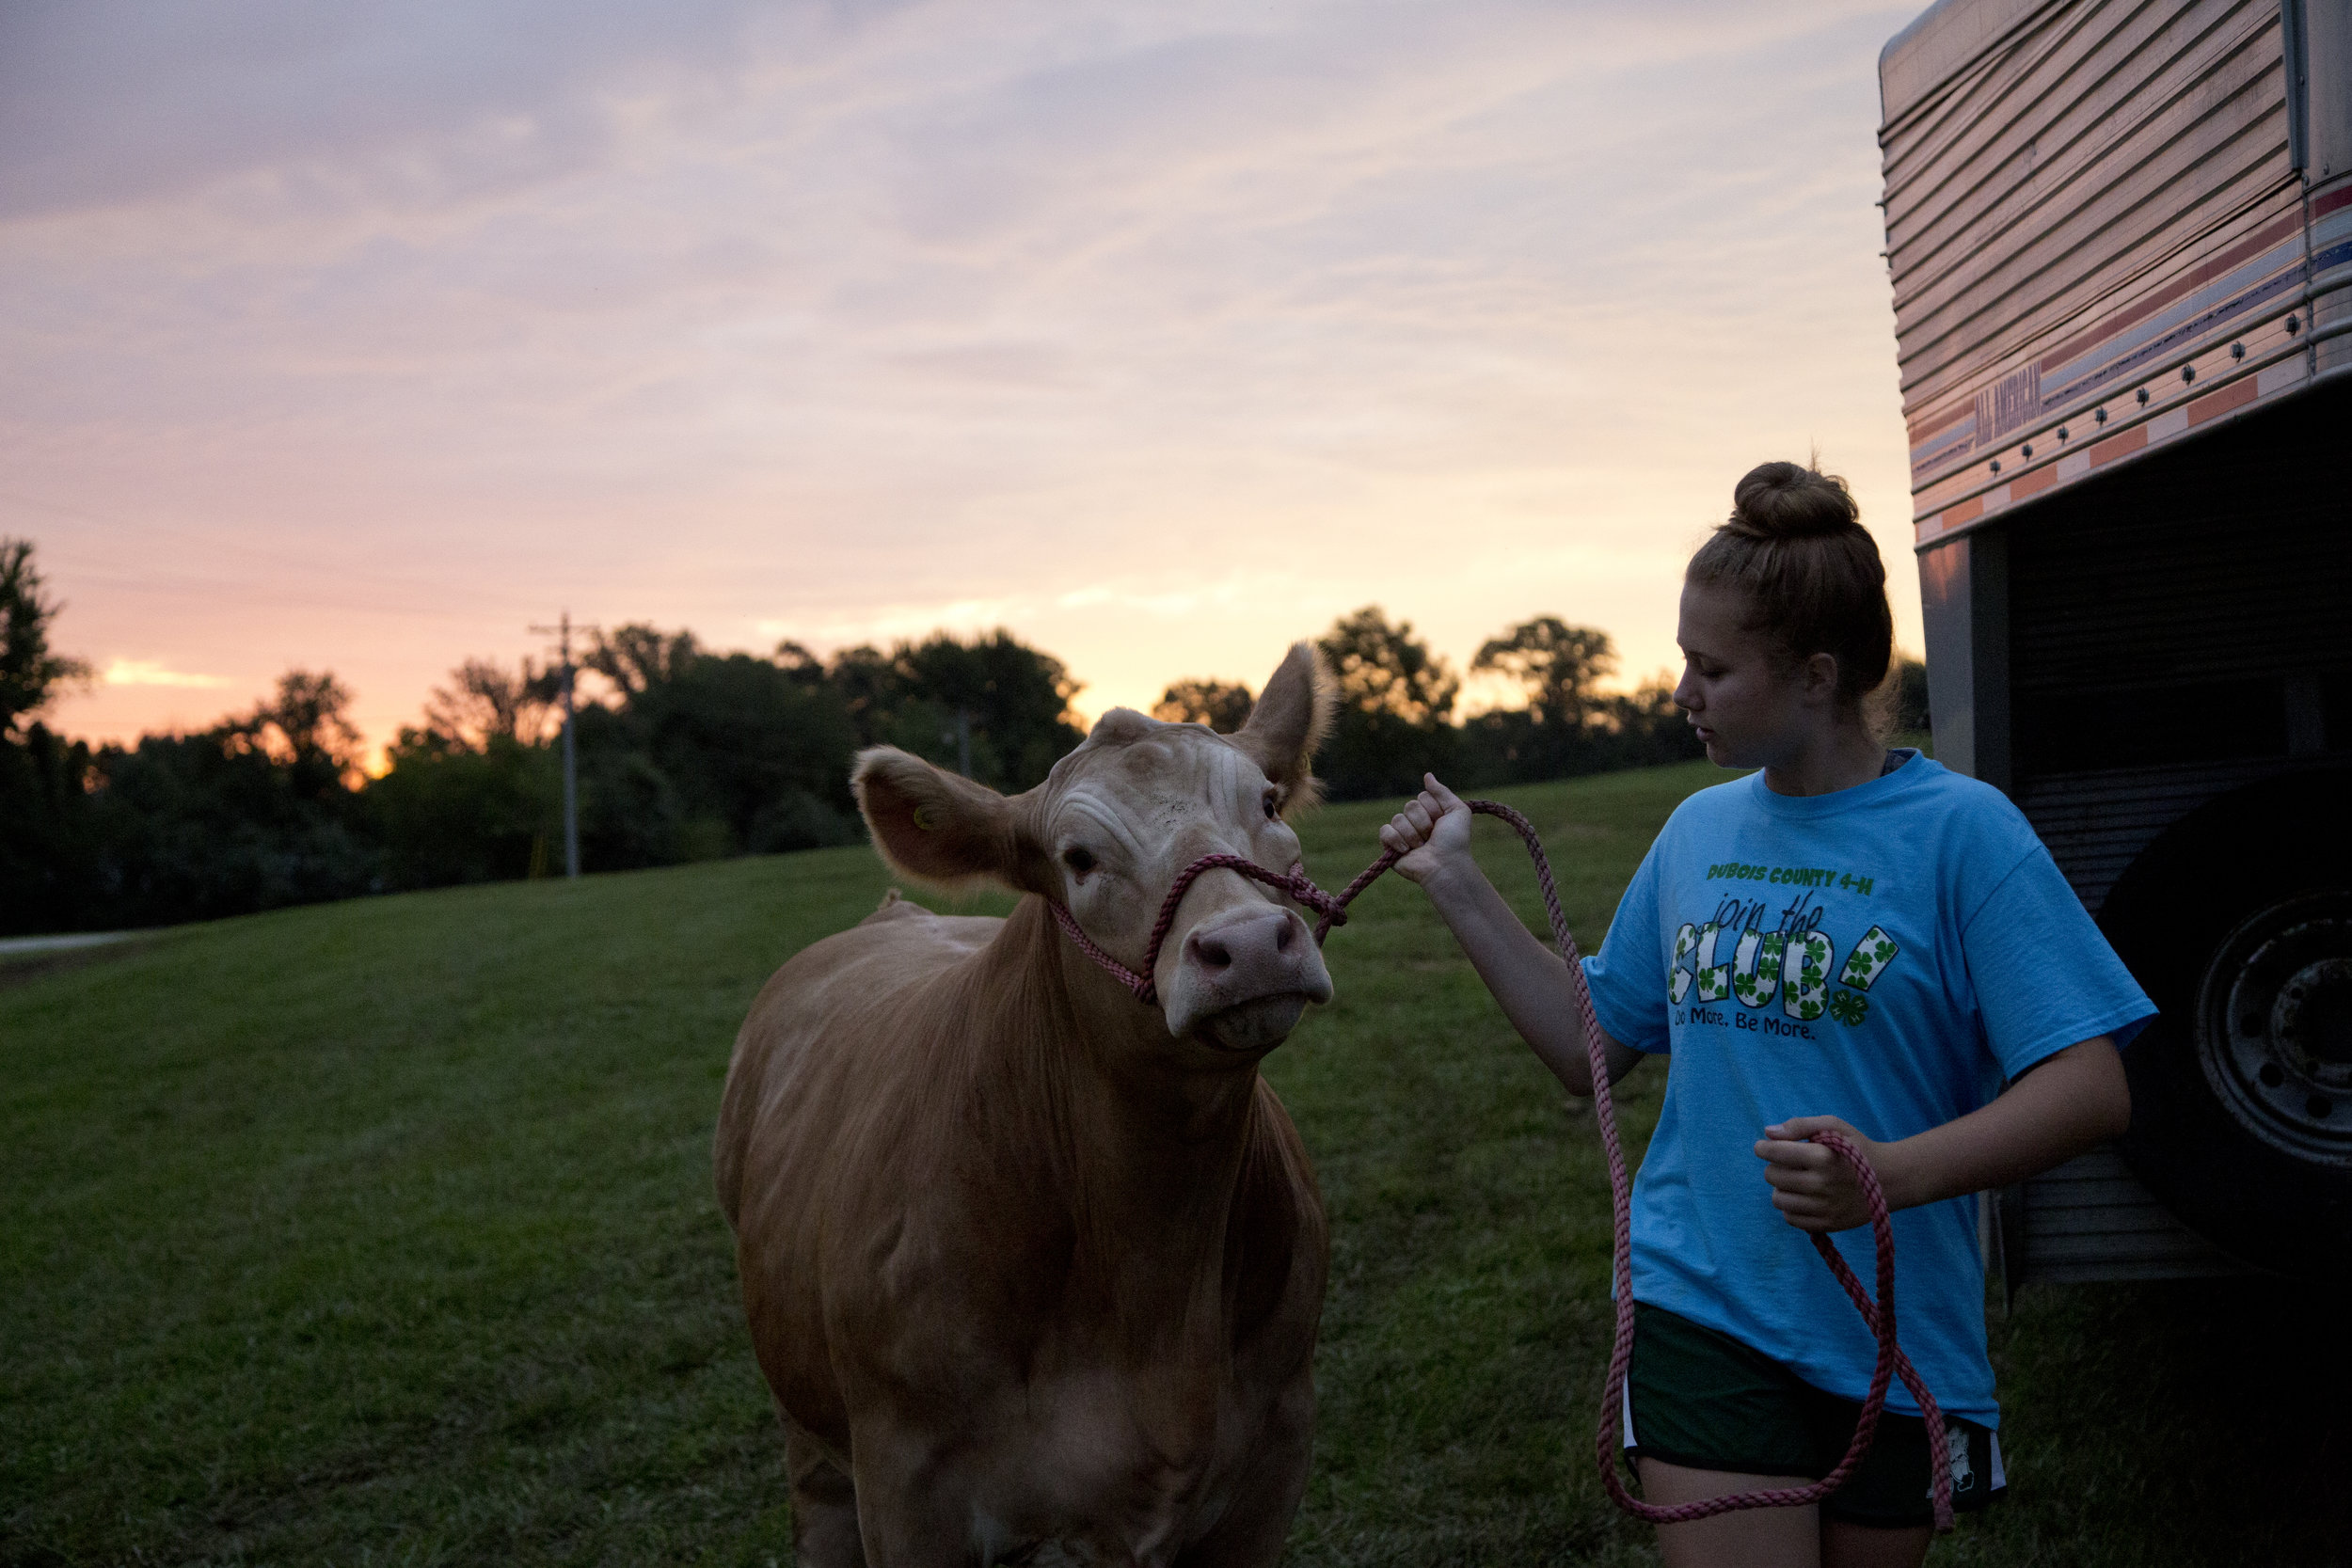 Allyson Werner of Ferdinand, 14, guided her steer from the outdoor pen at the Dubois County 4-H Fairgrounds in Bretzville on Wednesday morning.